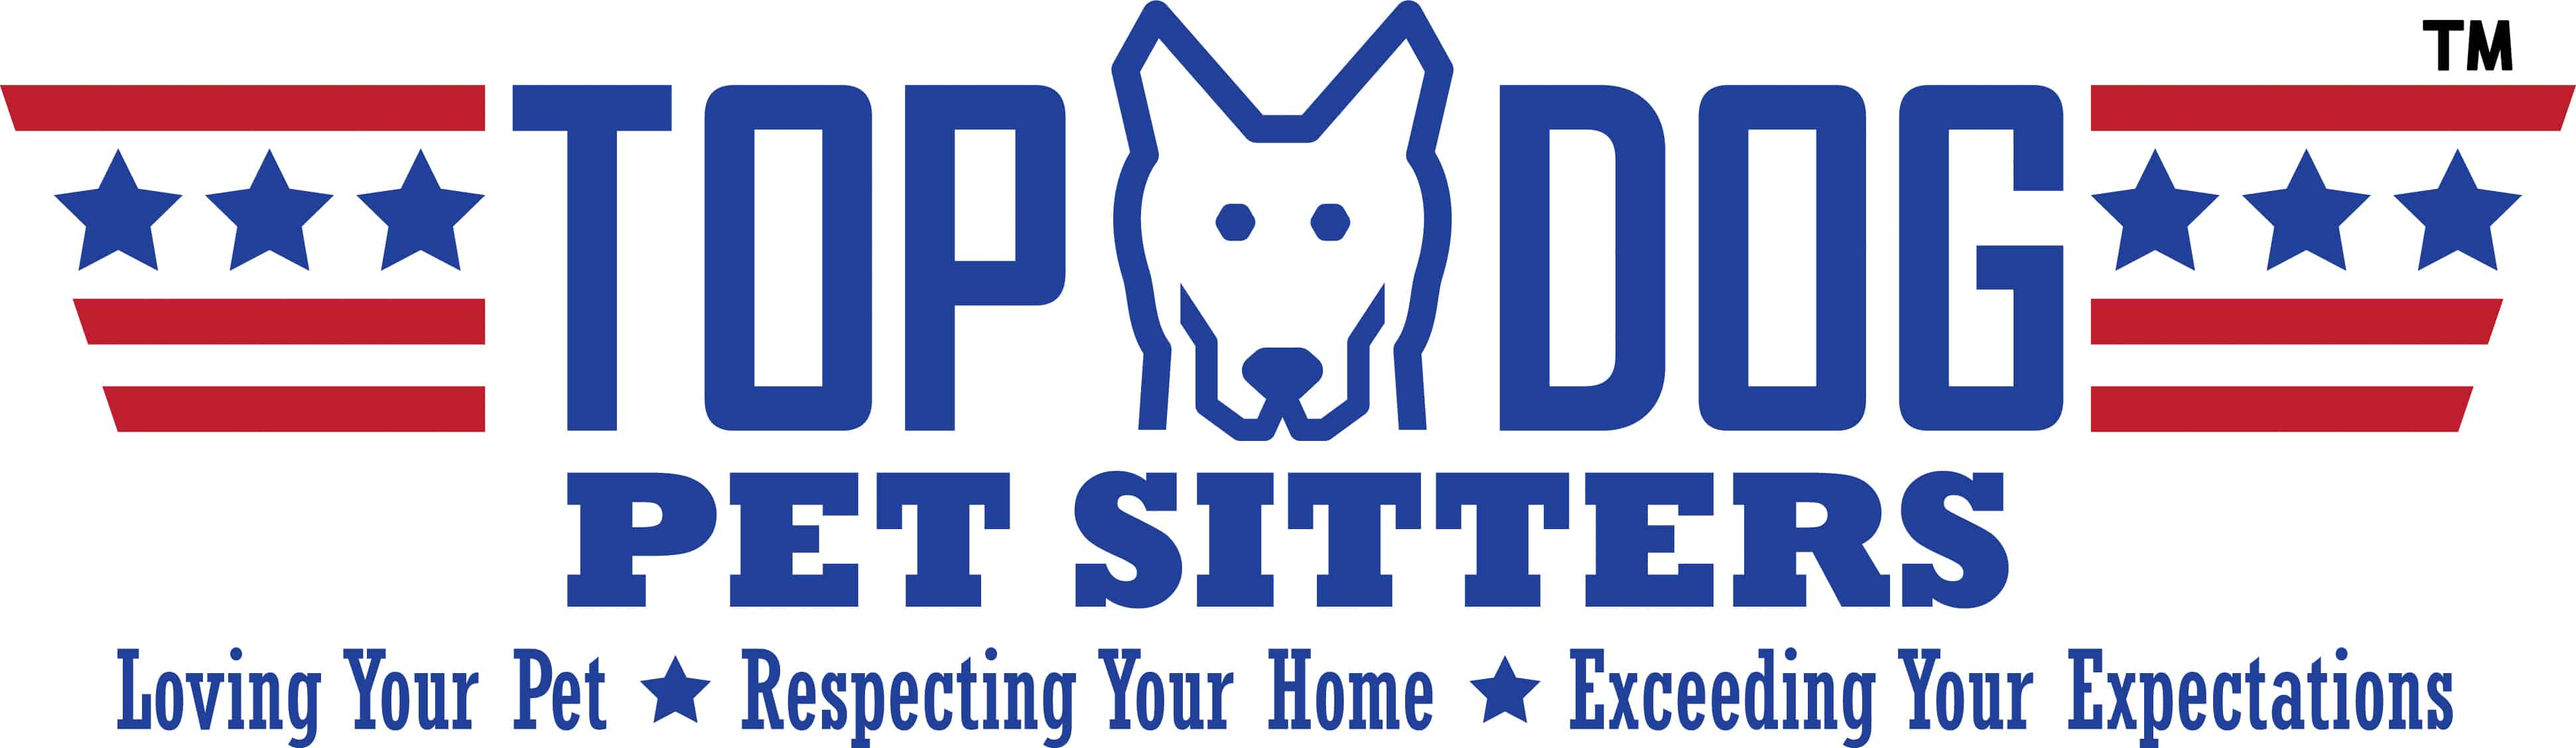 Mckinney S Best Pet Sitters And Dog Walkers Pet Sitters Dog Walkers Cat Sitters And Small Animal Care Only The Best For Mckinney Tx Pets